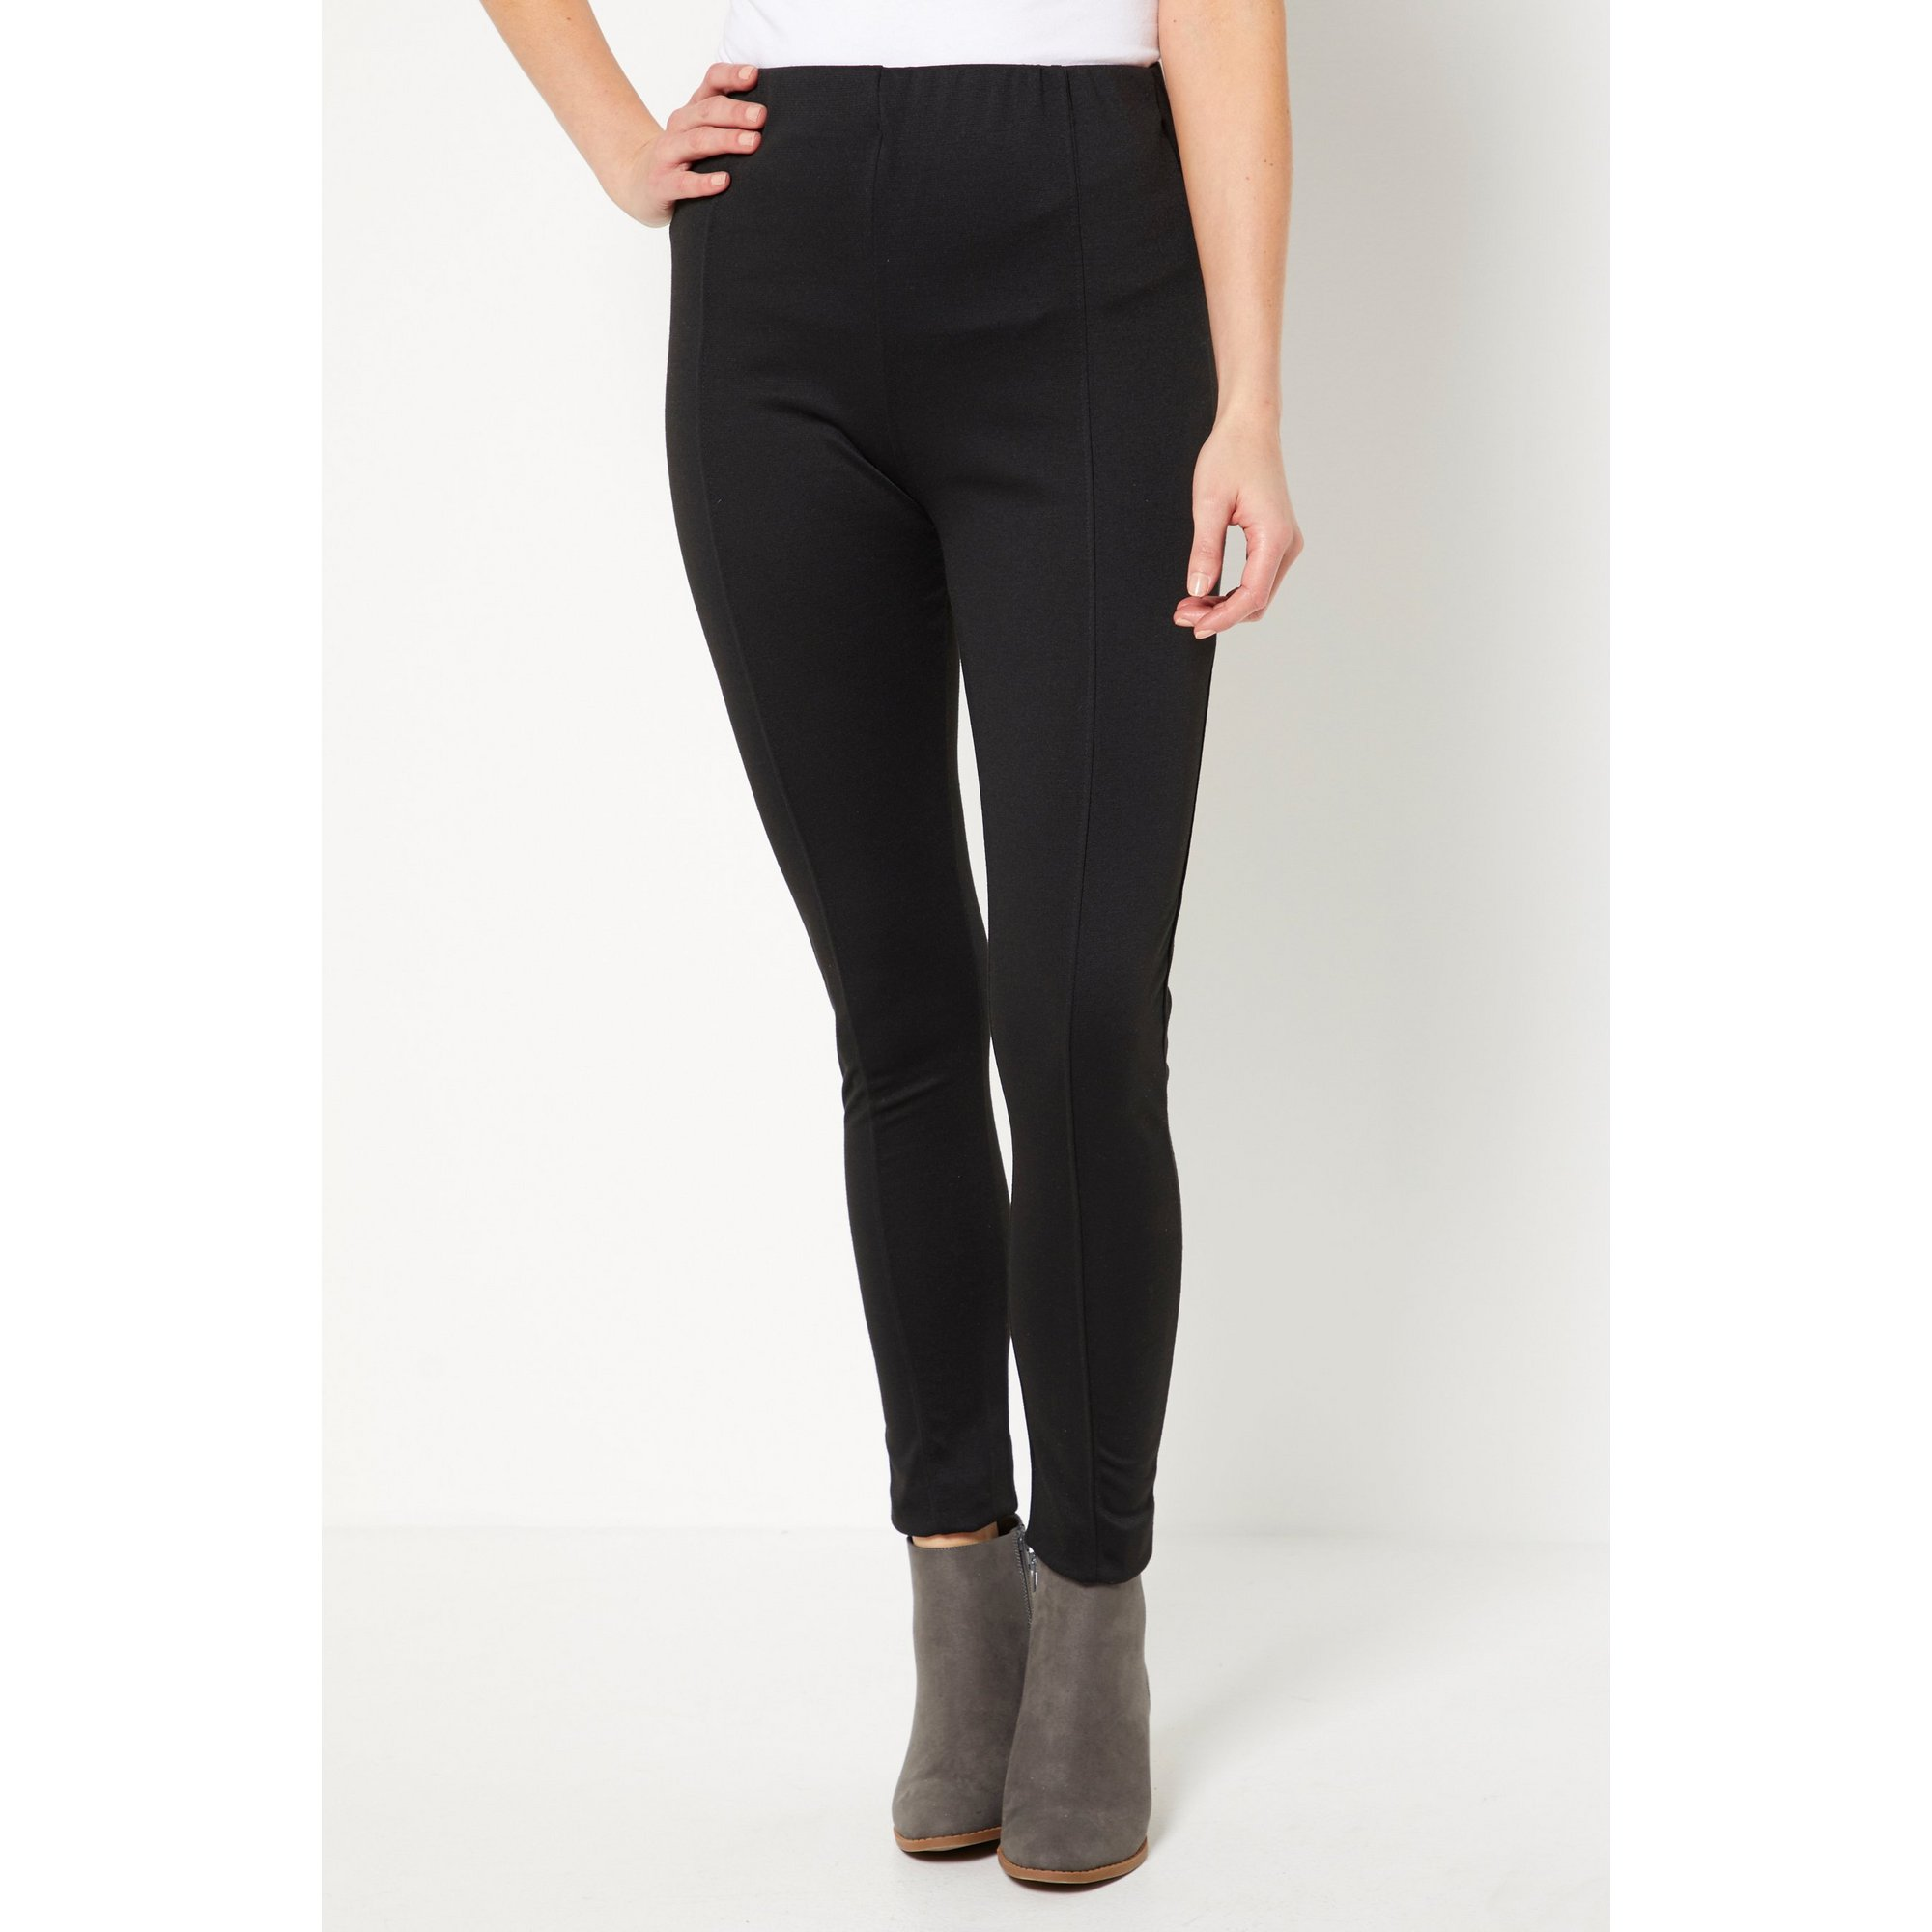 Image of In The Style Jac Jossa Black Ponte Leggings